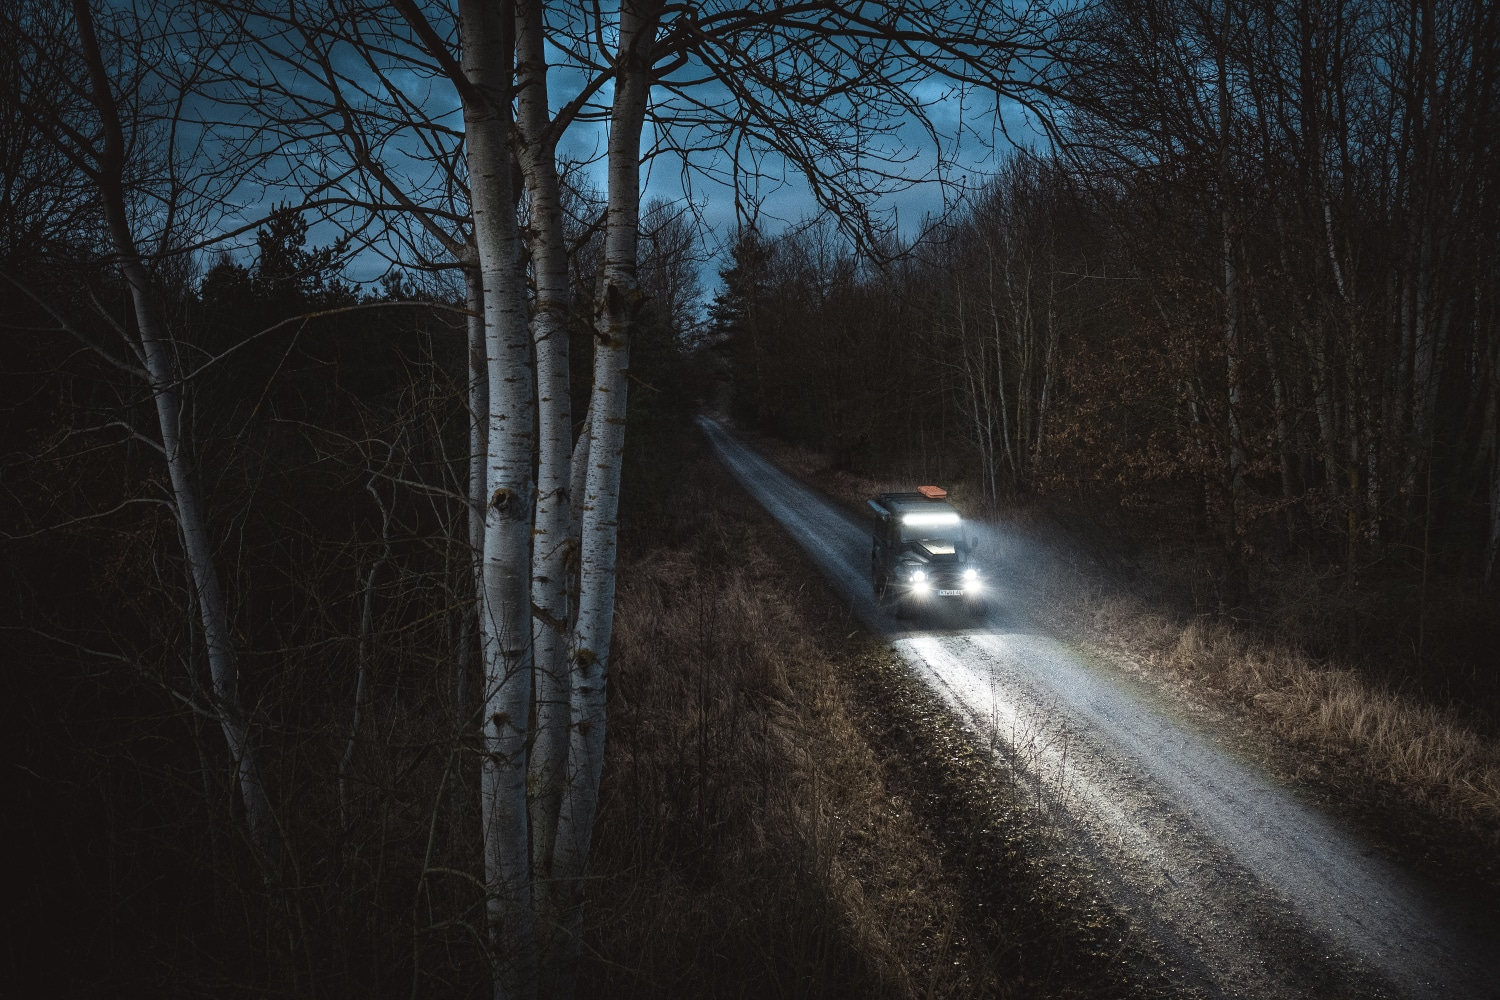 Comercial Lazer lights offroad with a land rover defender 110 td5